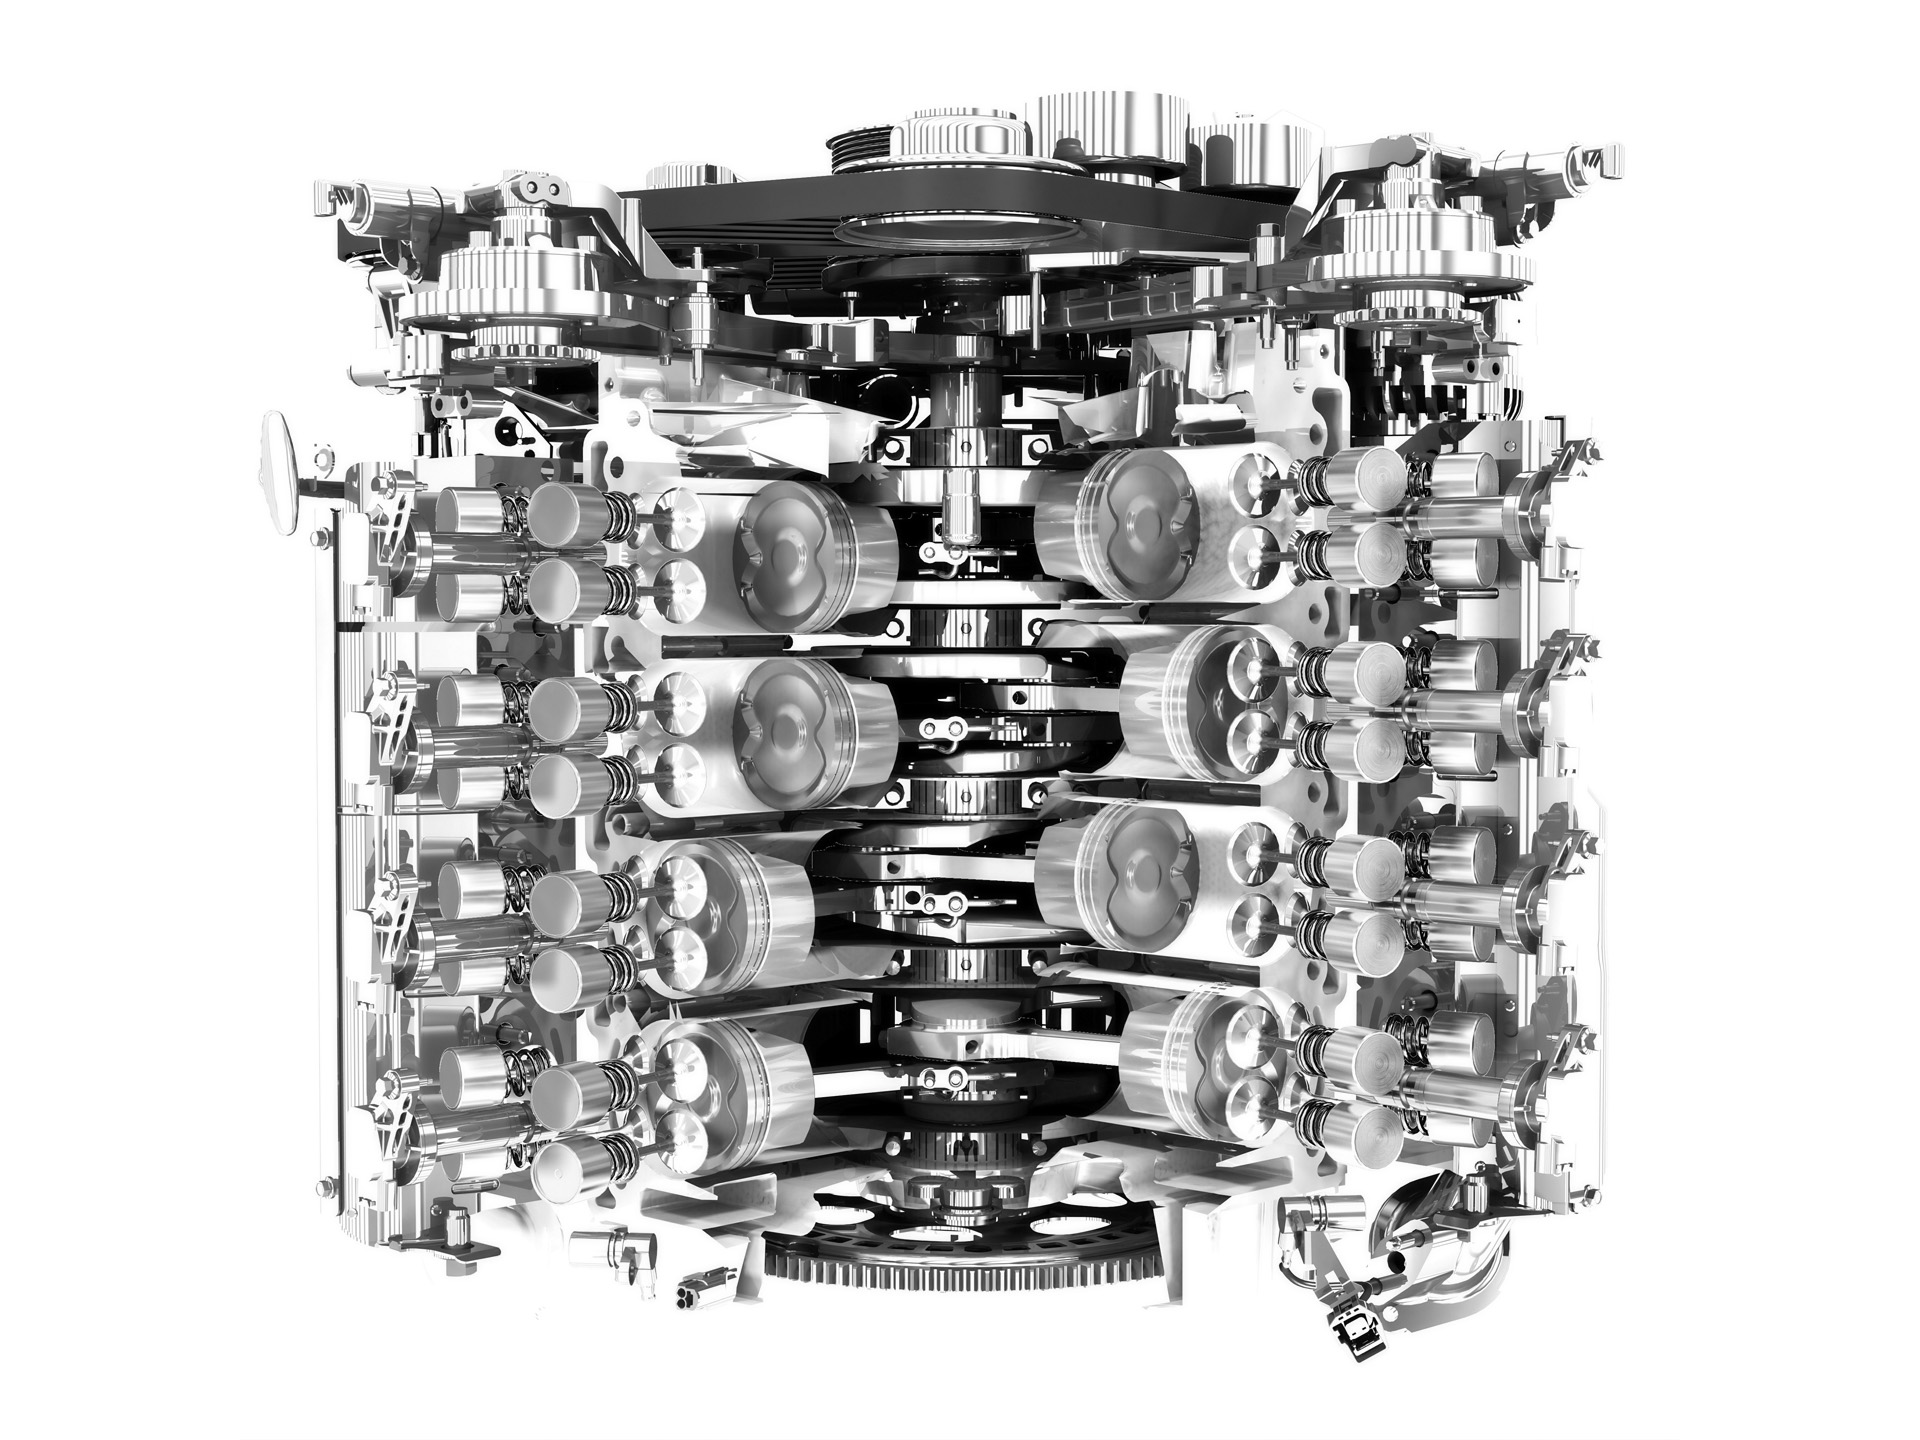 Sample P1352 Engine